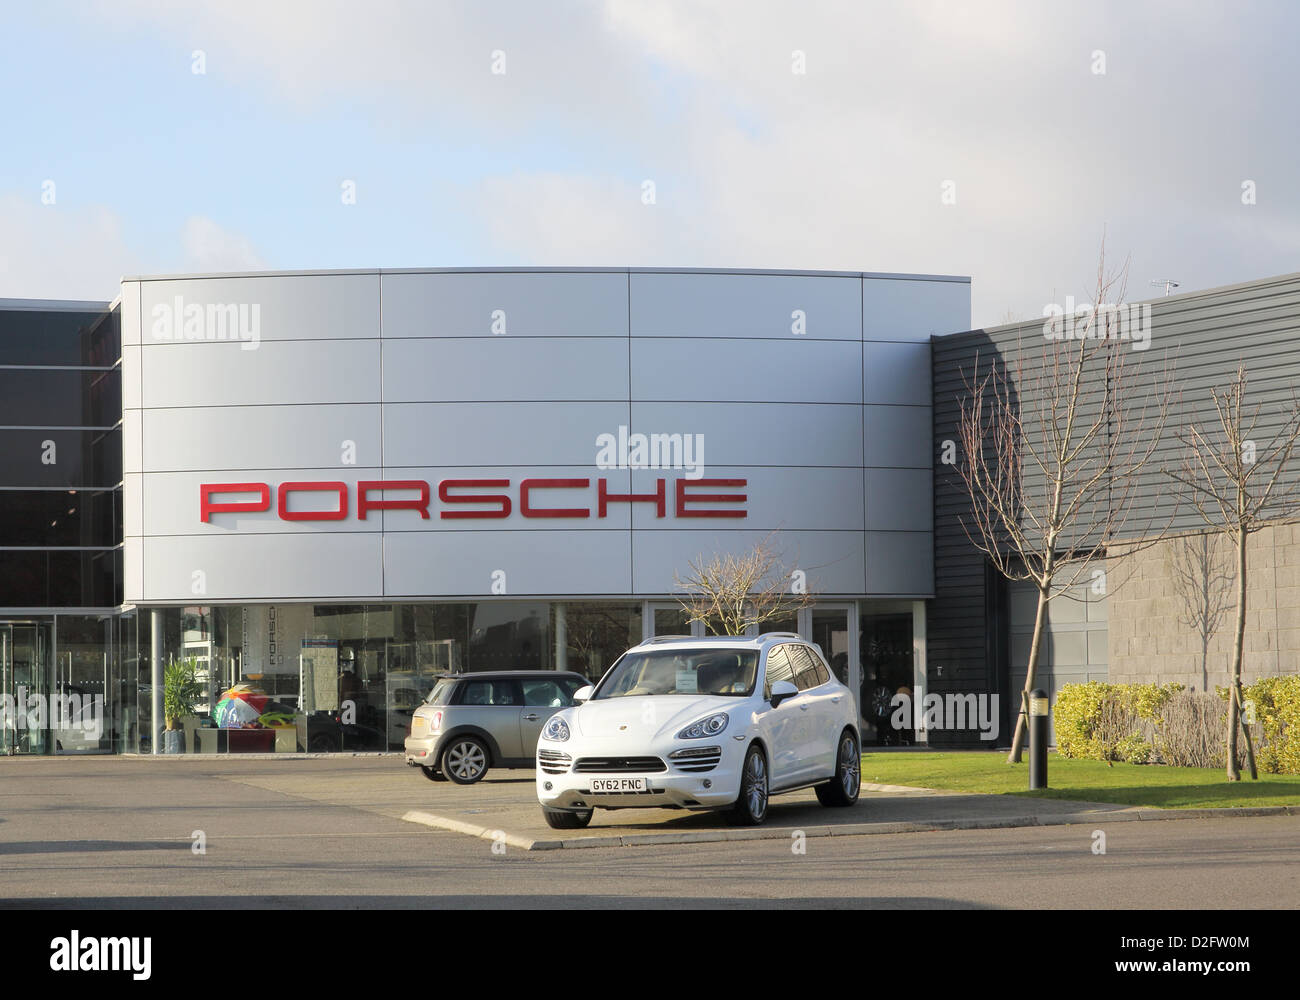 porsche showroom in the industrial and commercial area of burgess hill west sussex Stock Photo